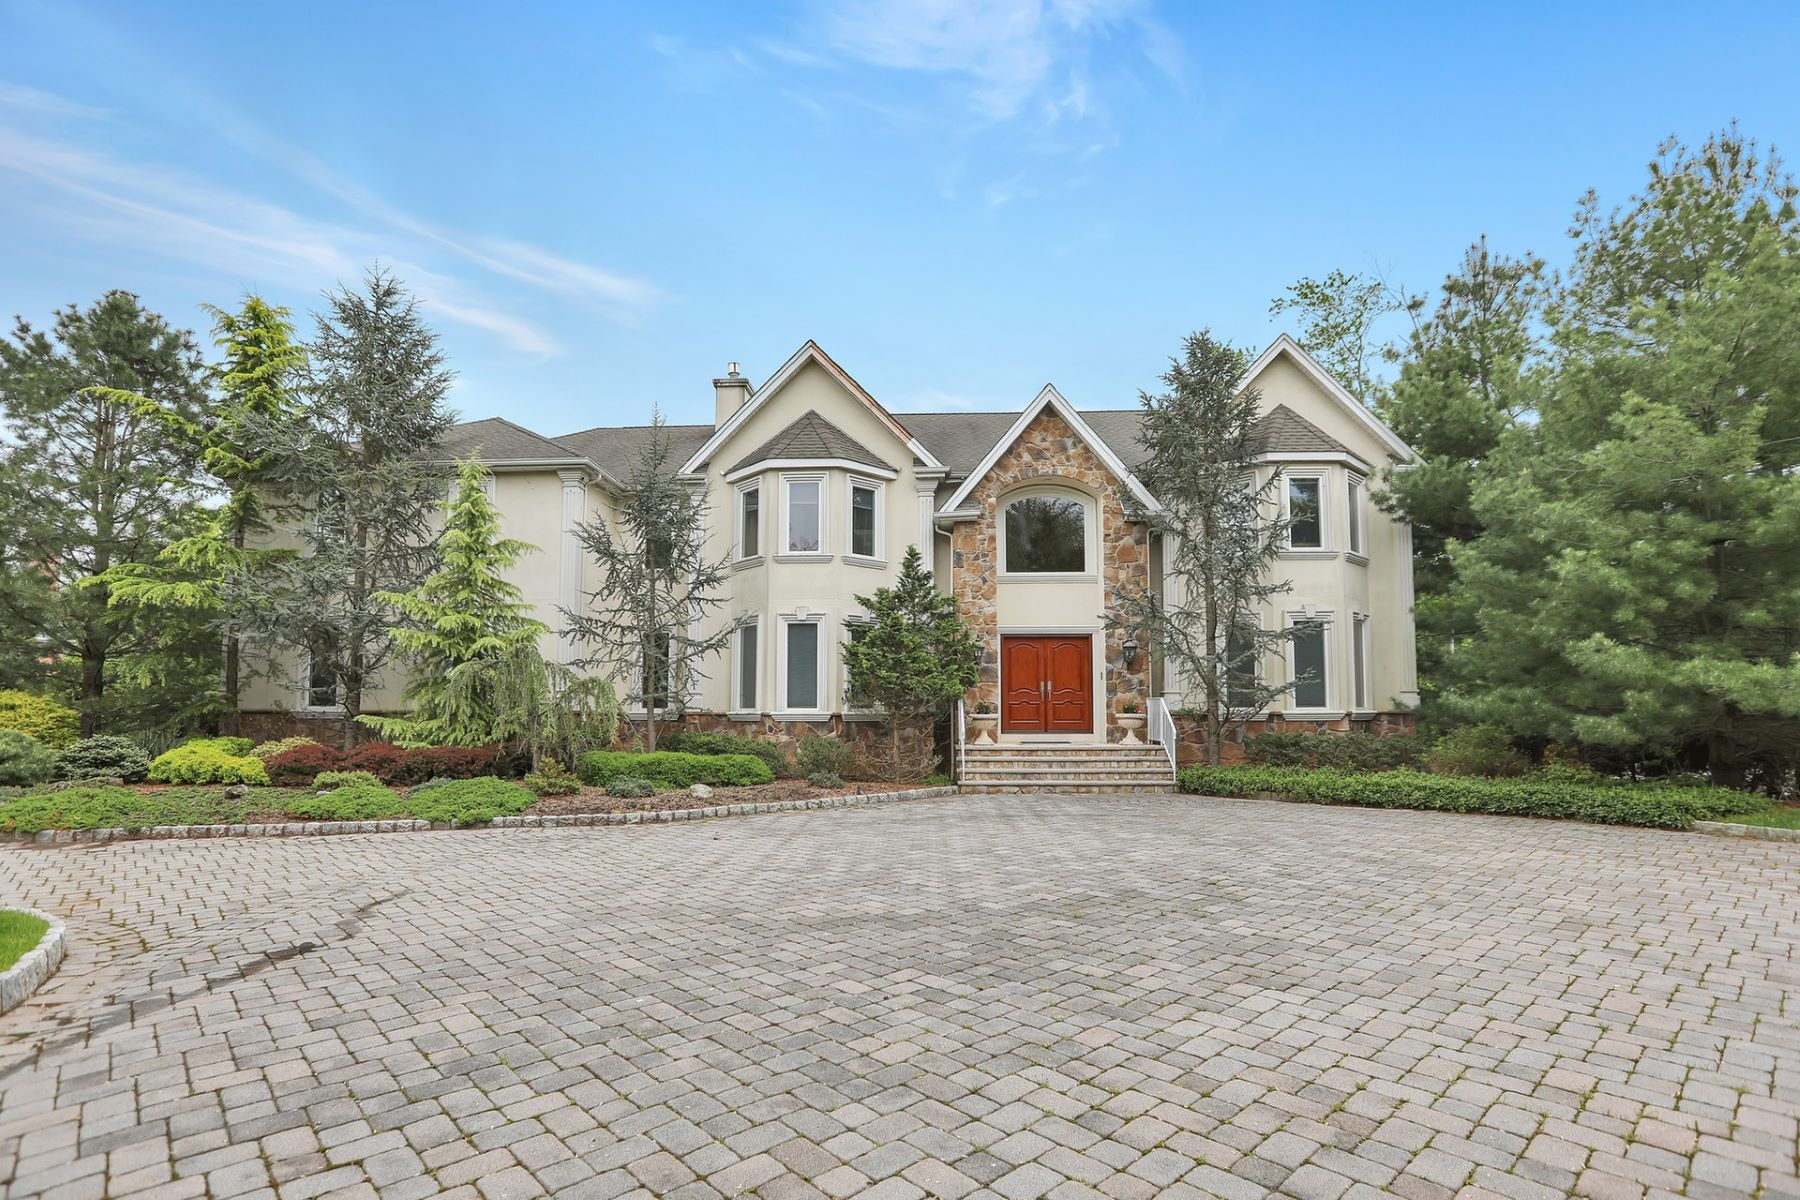 Single Family Home for Sale at Spectacular Panoramic Views! 1048 Westwood Avenue, Old Tappan, New Jersey 07675 United States